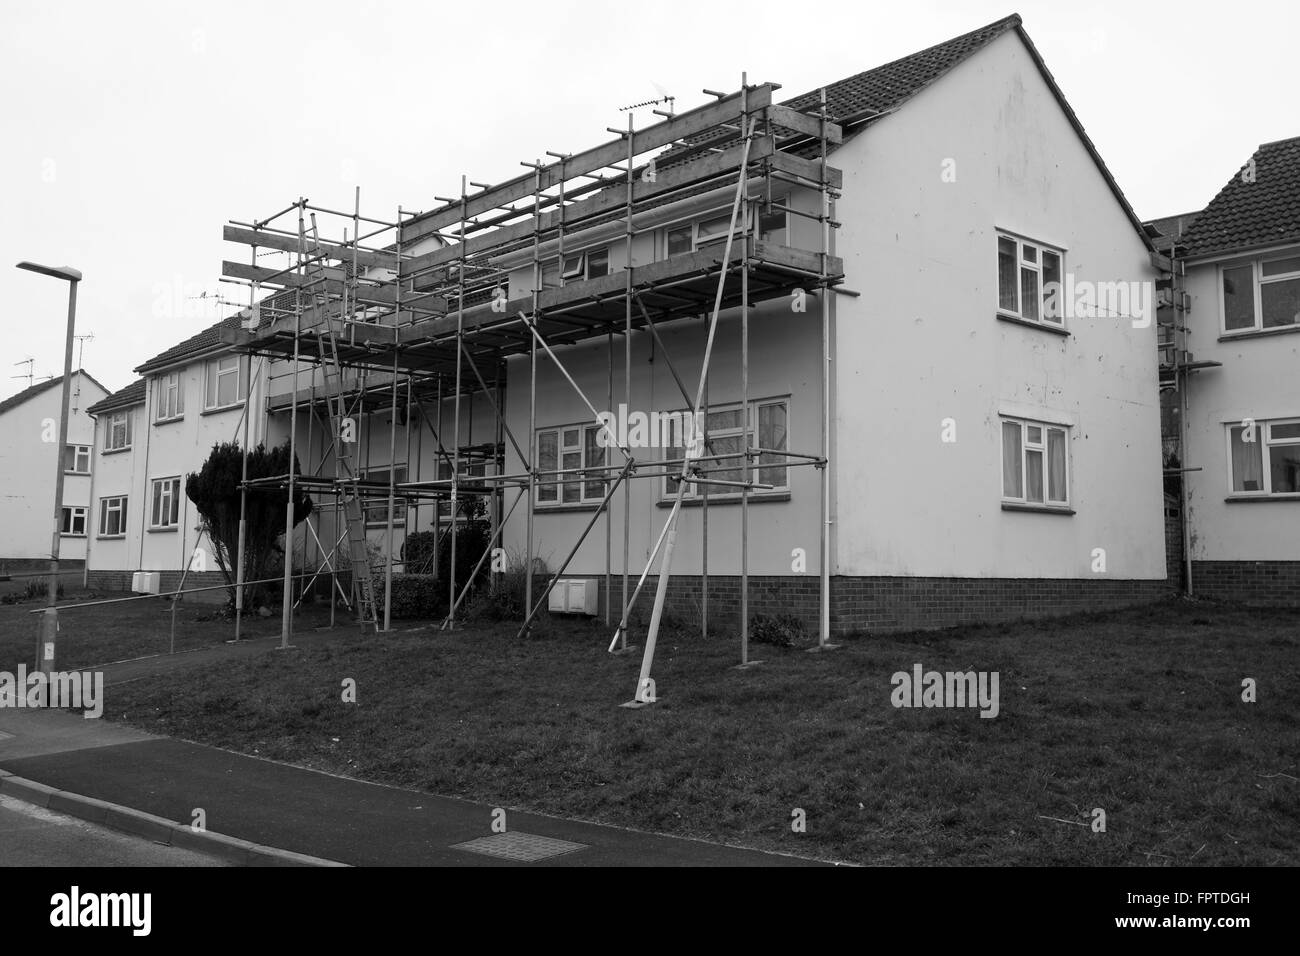 Access scaffolding on a small British apartment block of flats. March 2016 - Stock Image